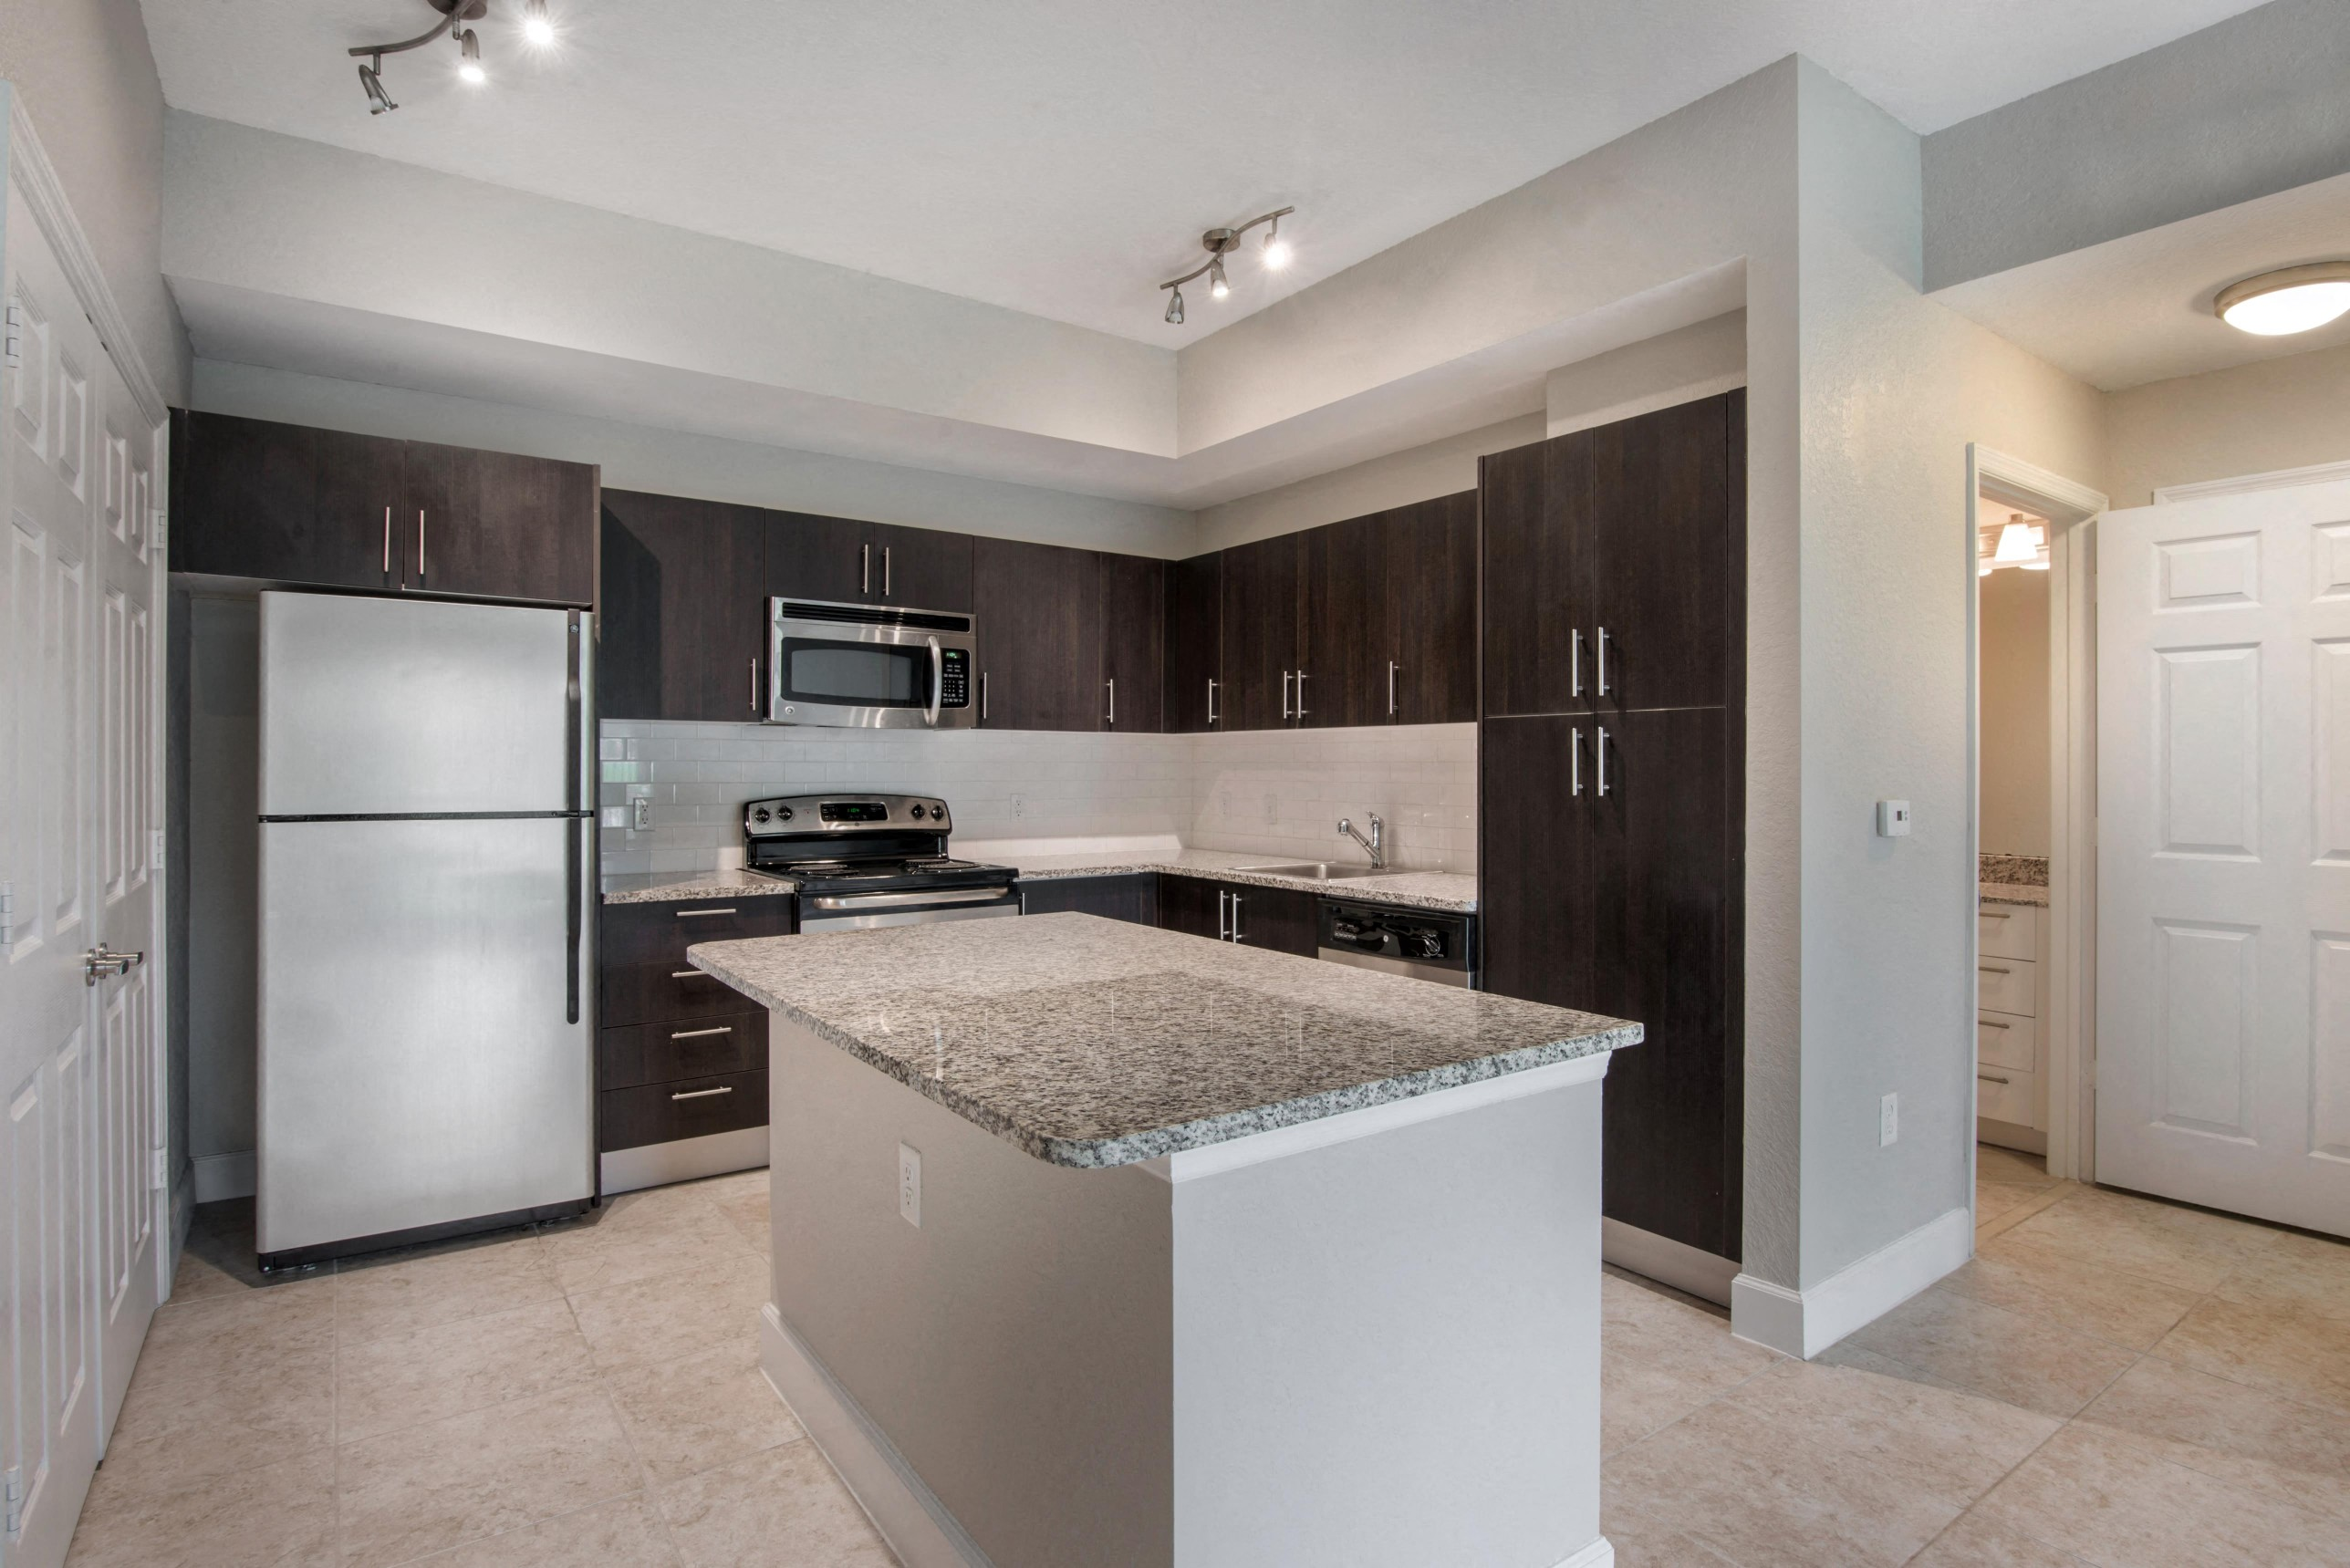 Park Aire Apartments | Kitchen with Stainless Steel Appliances and Center Island